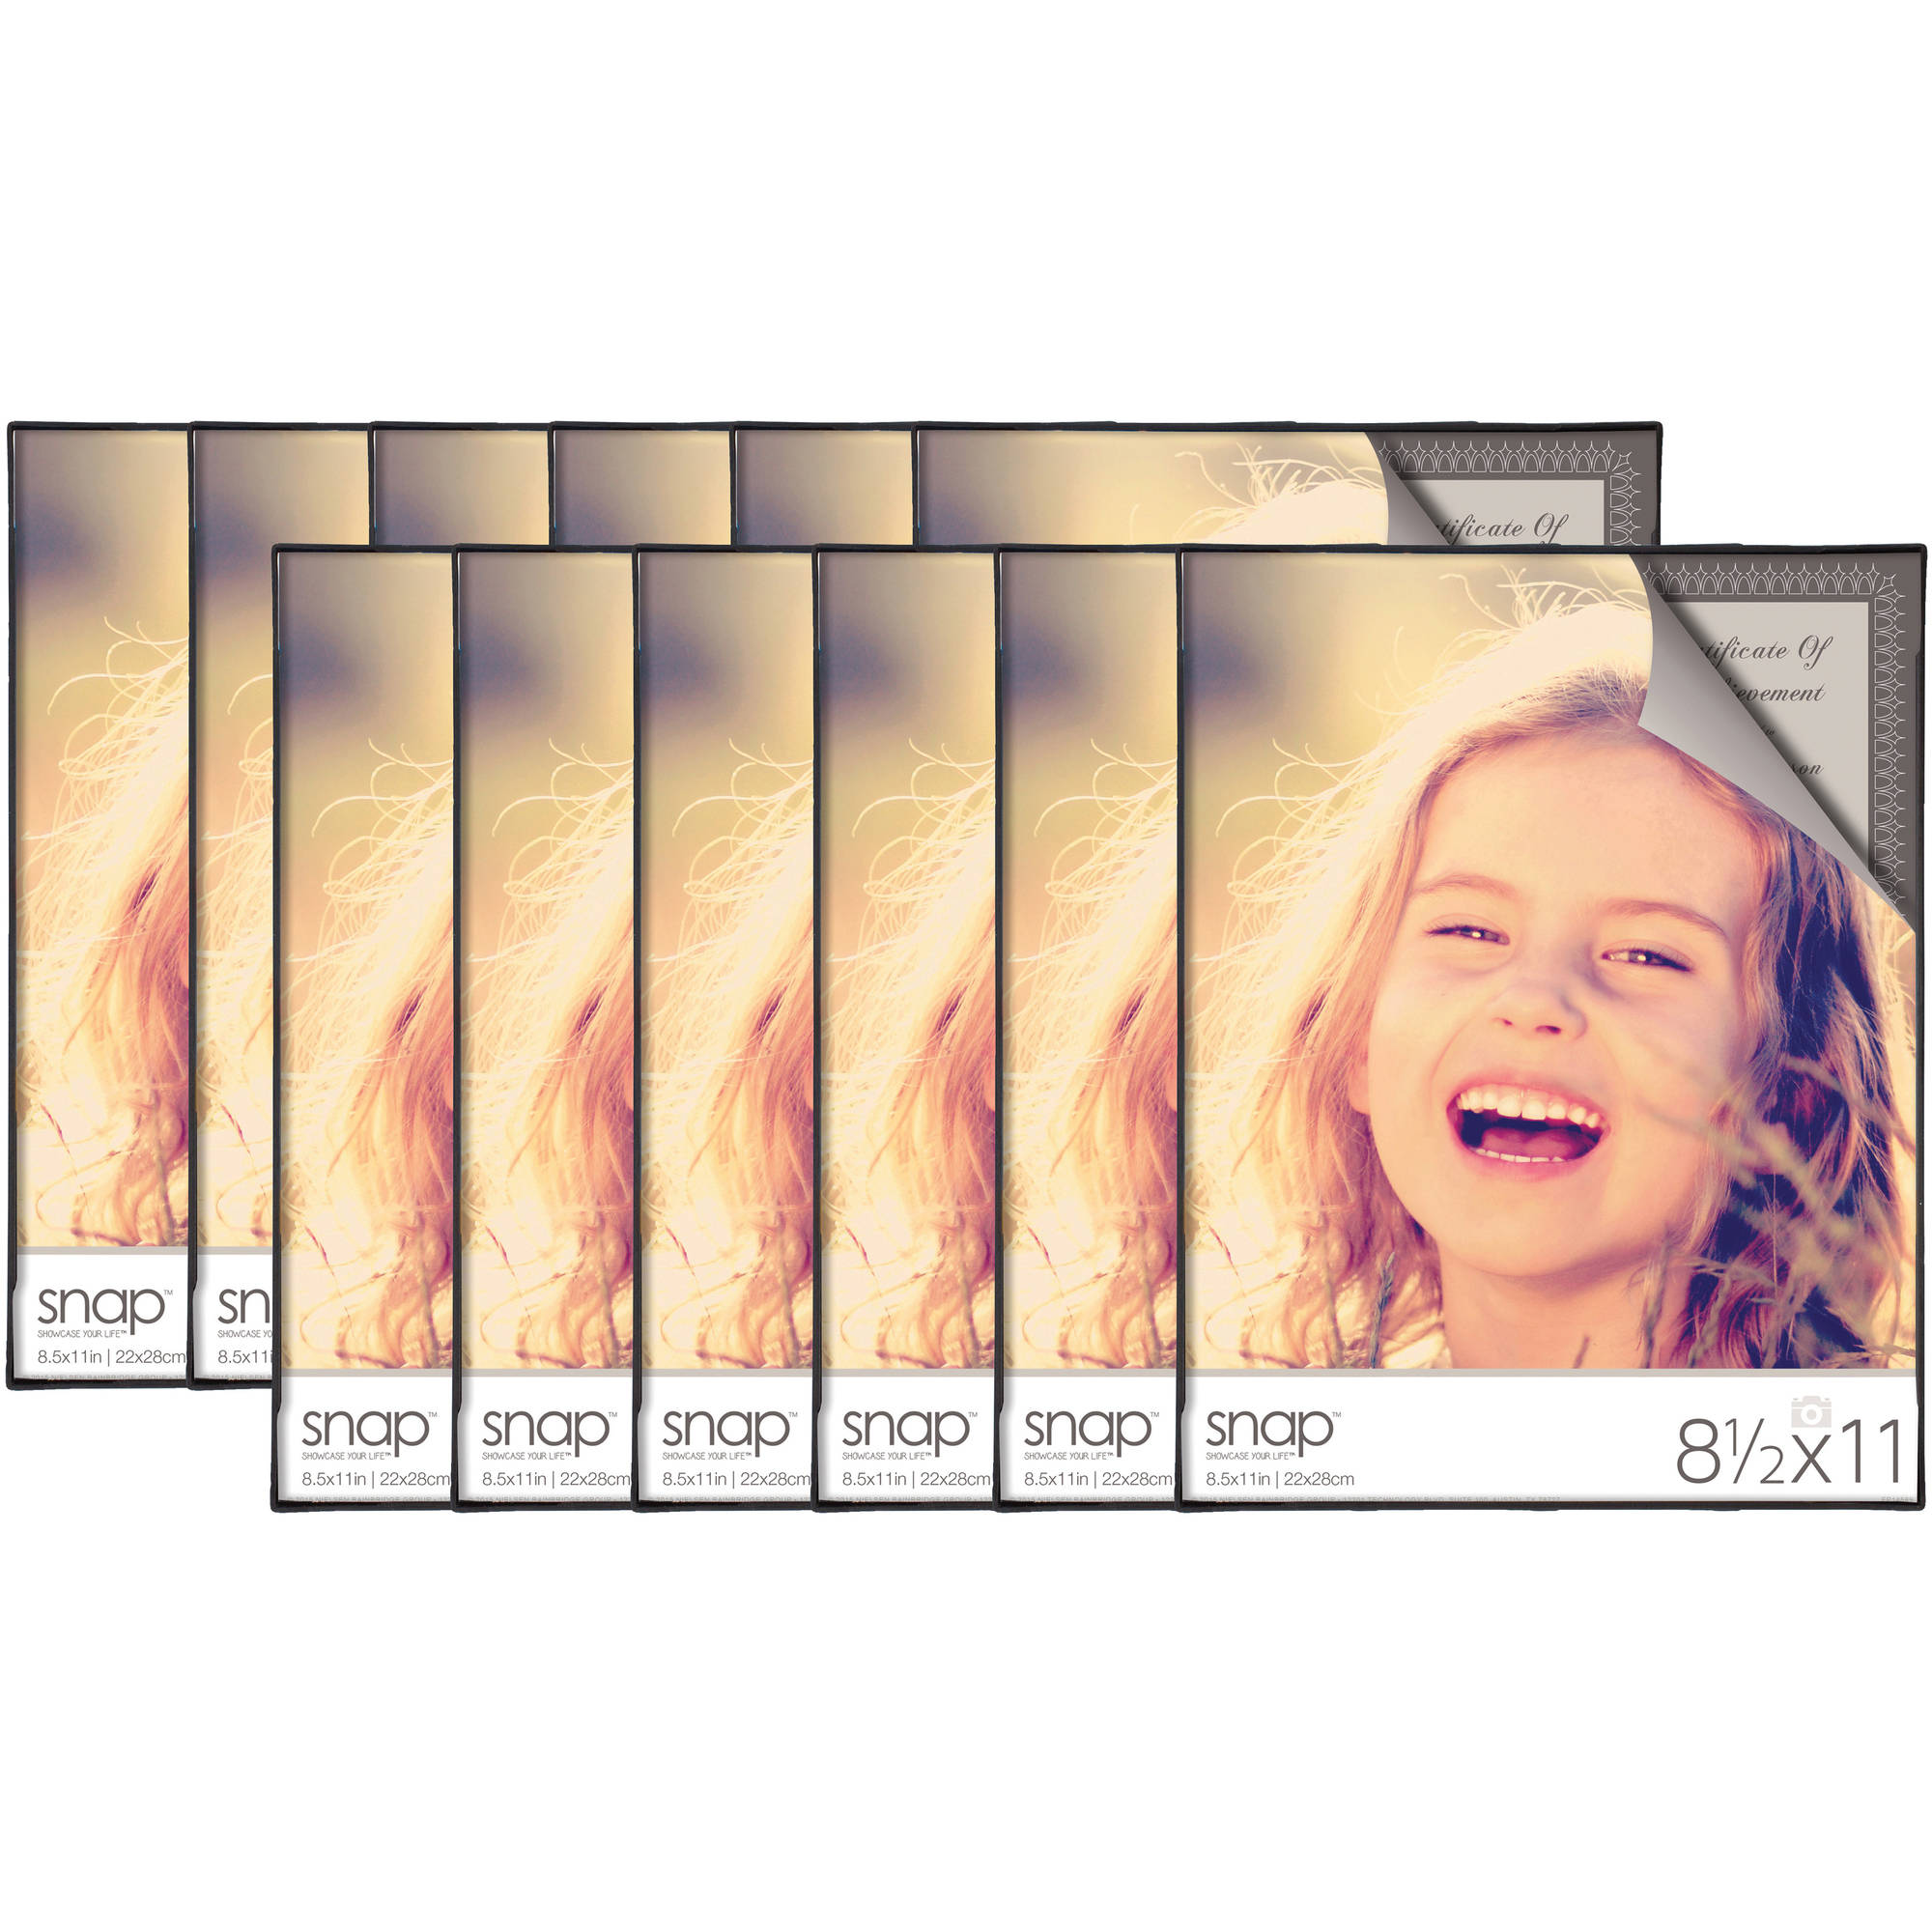 Snap 8.5x11 Front Loading Document Frame, Set of 12